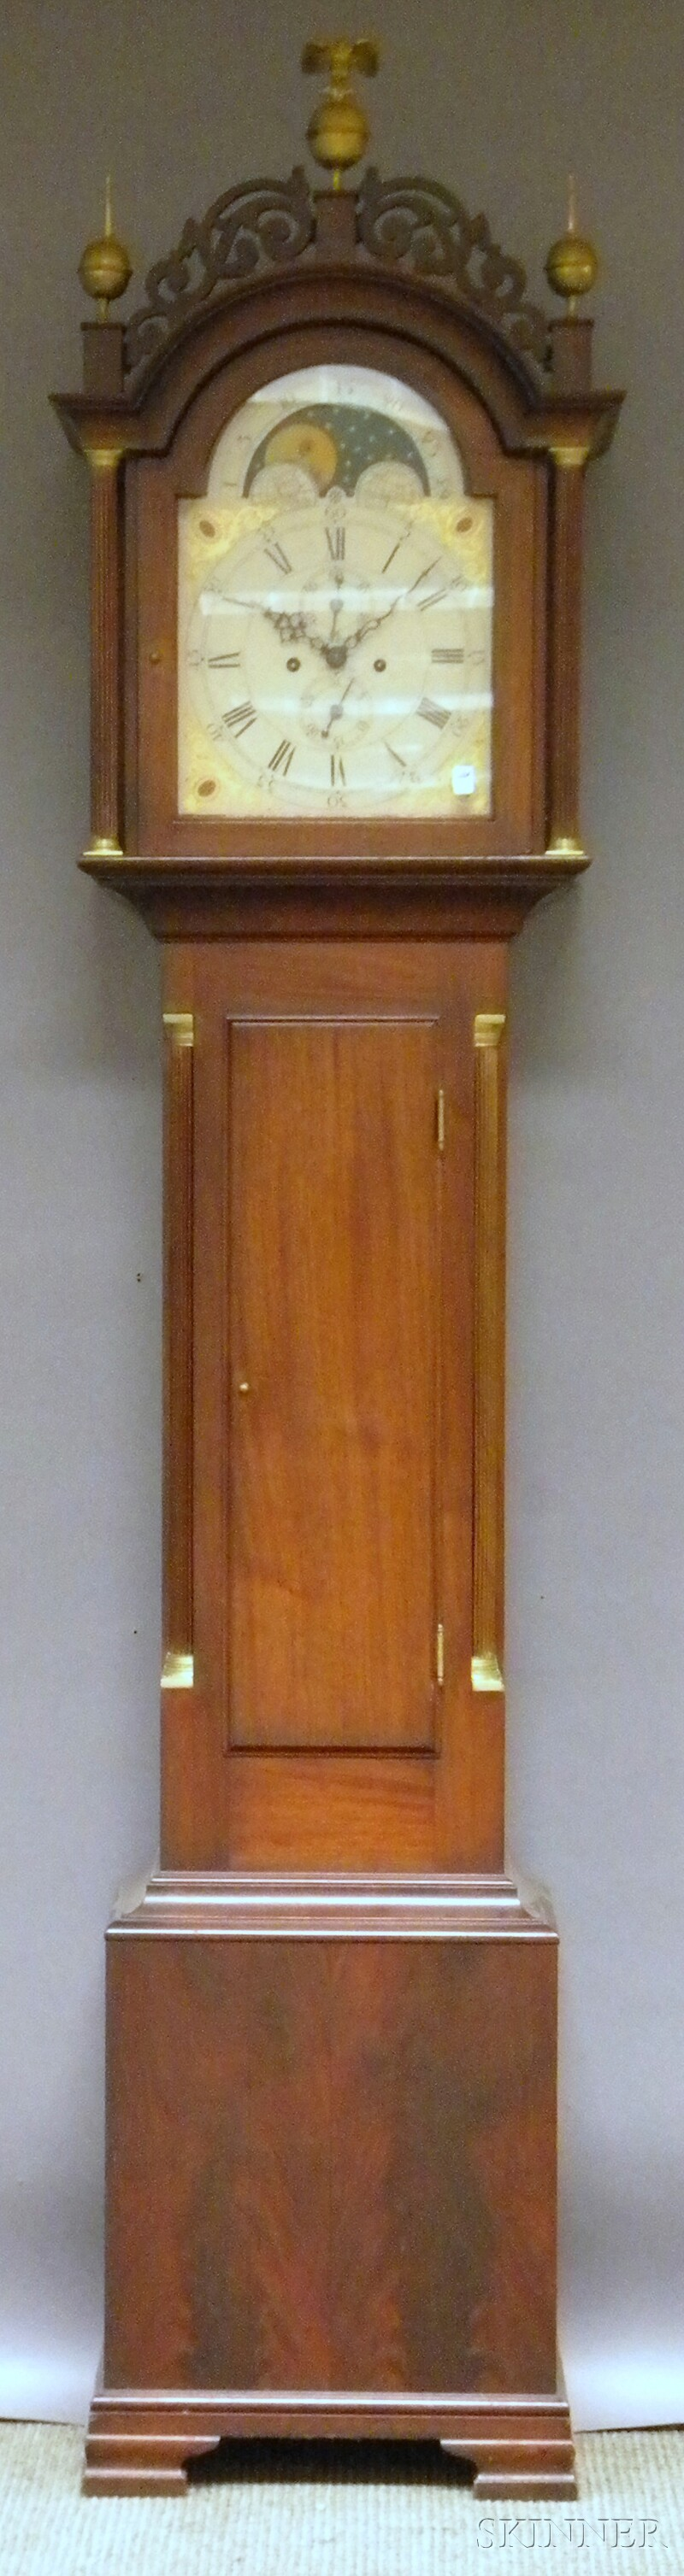 Tiffany & Co. Mahogany Grandfather Clock